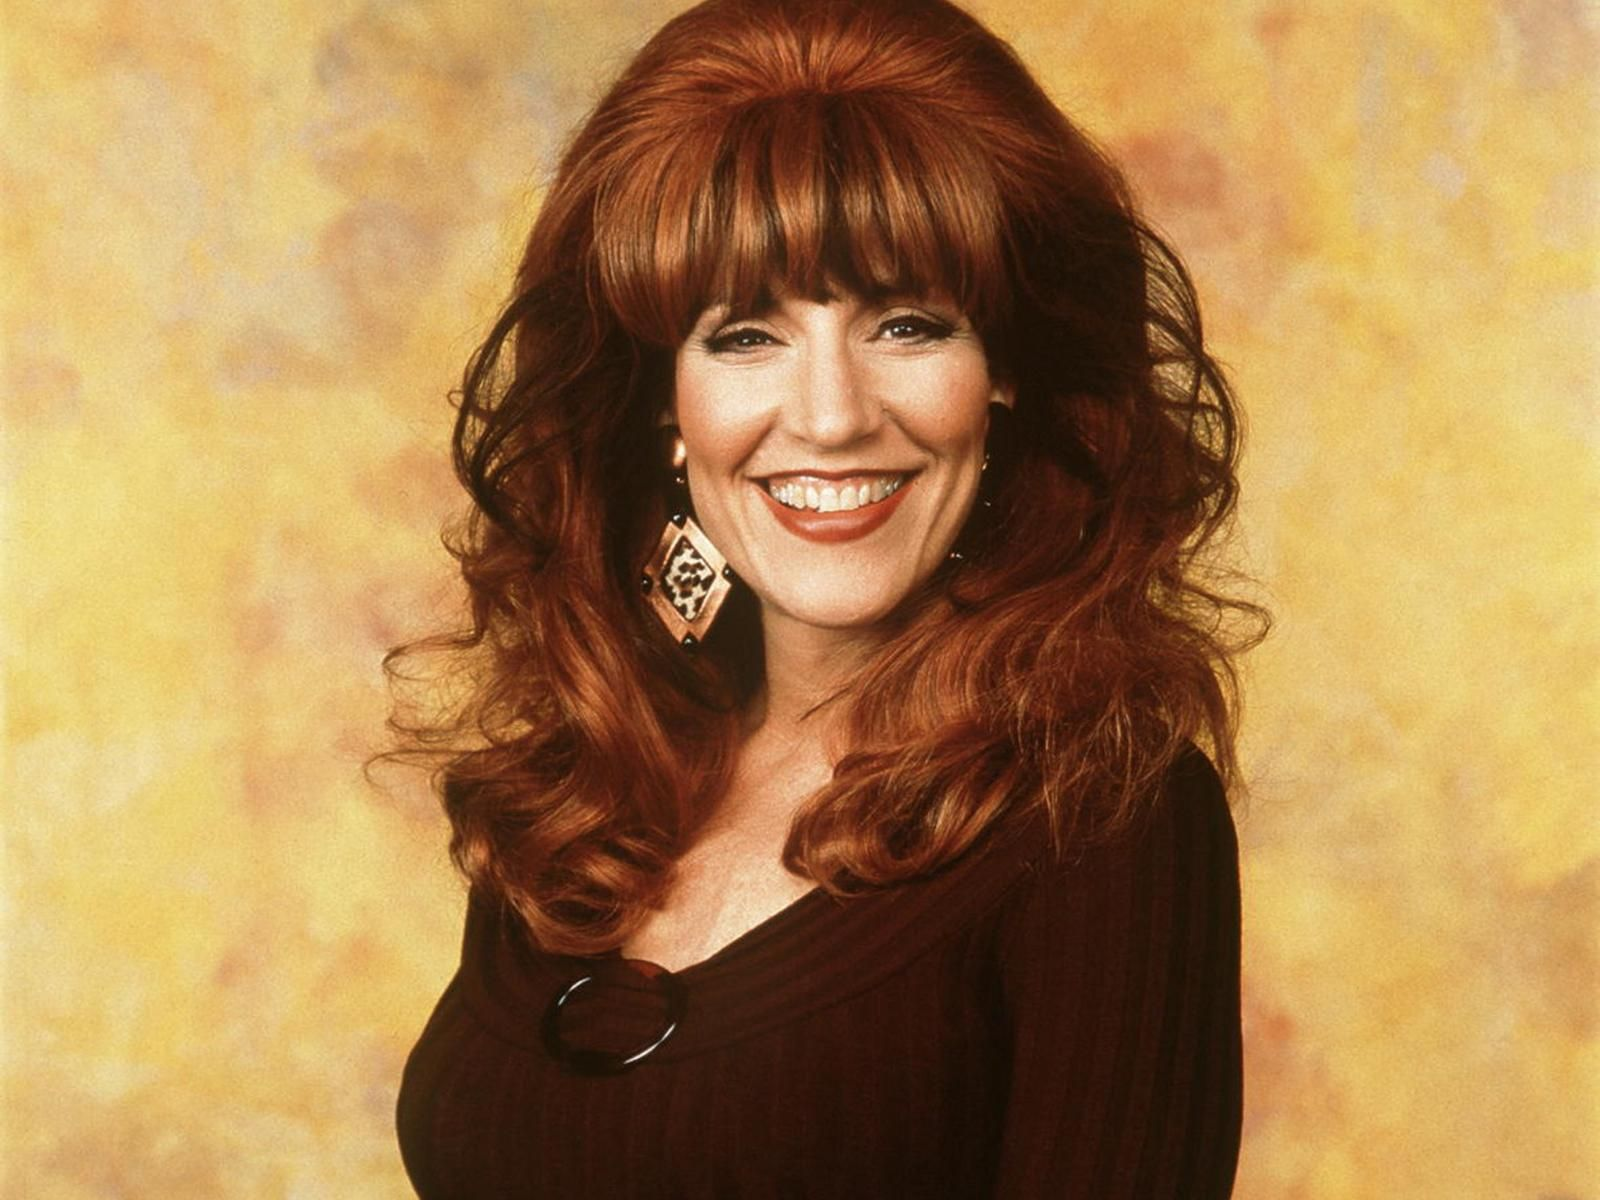 Pictures of katey sagal sex